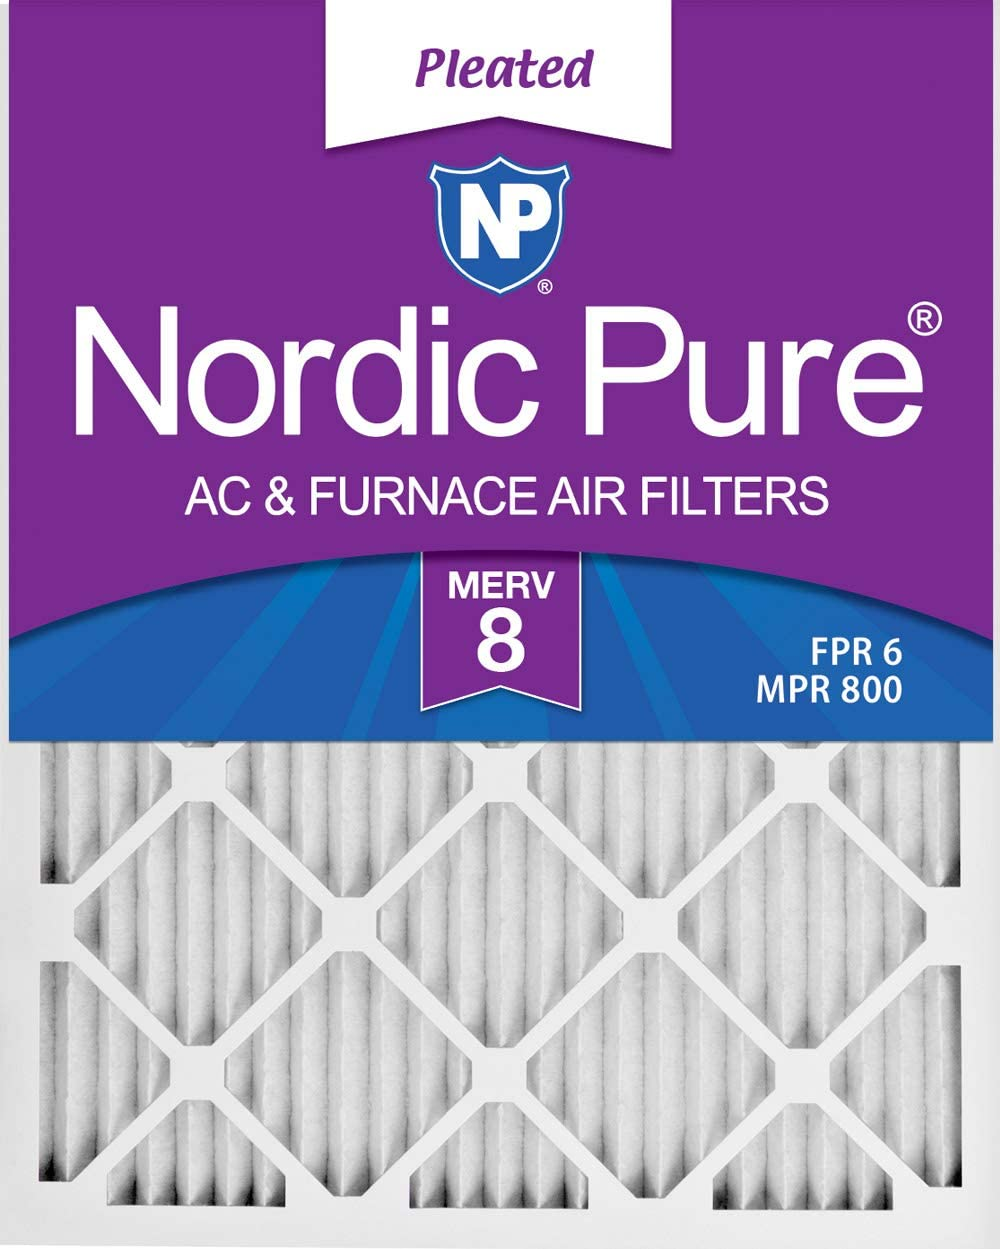 12x20x1 Pleated MERV 8 Air Filters 6 Pack